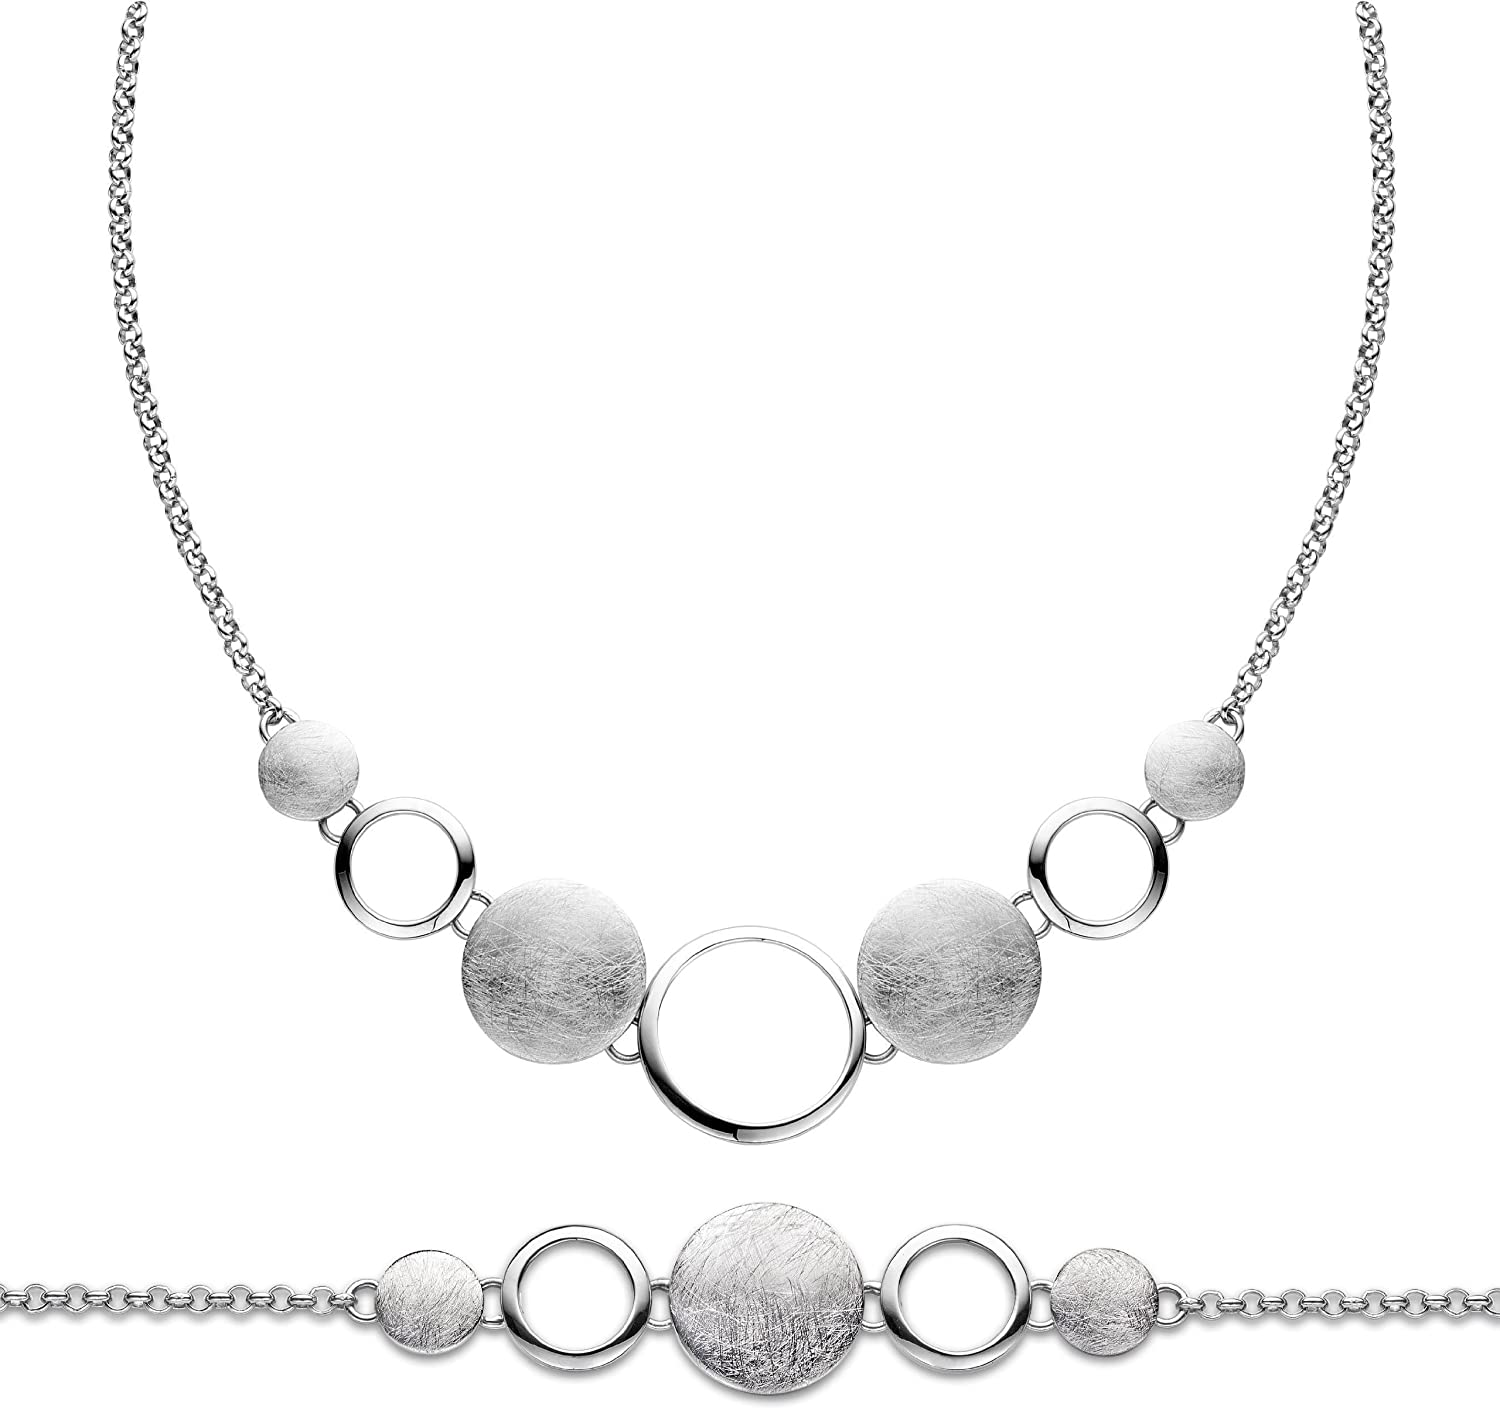 Orphelia Damen-Schmuckset Pure Collection 925 Sterlingsilber Kette 43 cm Armband 19 cm SET-027